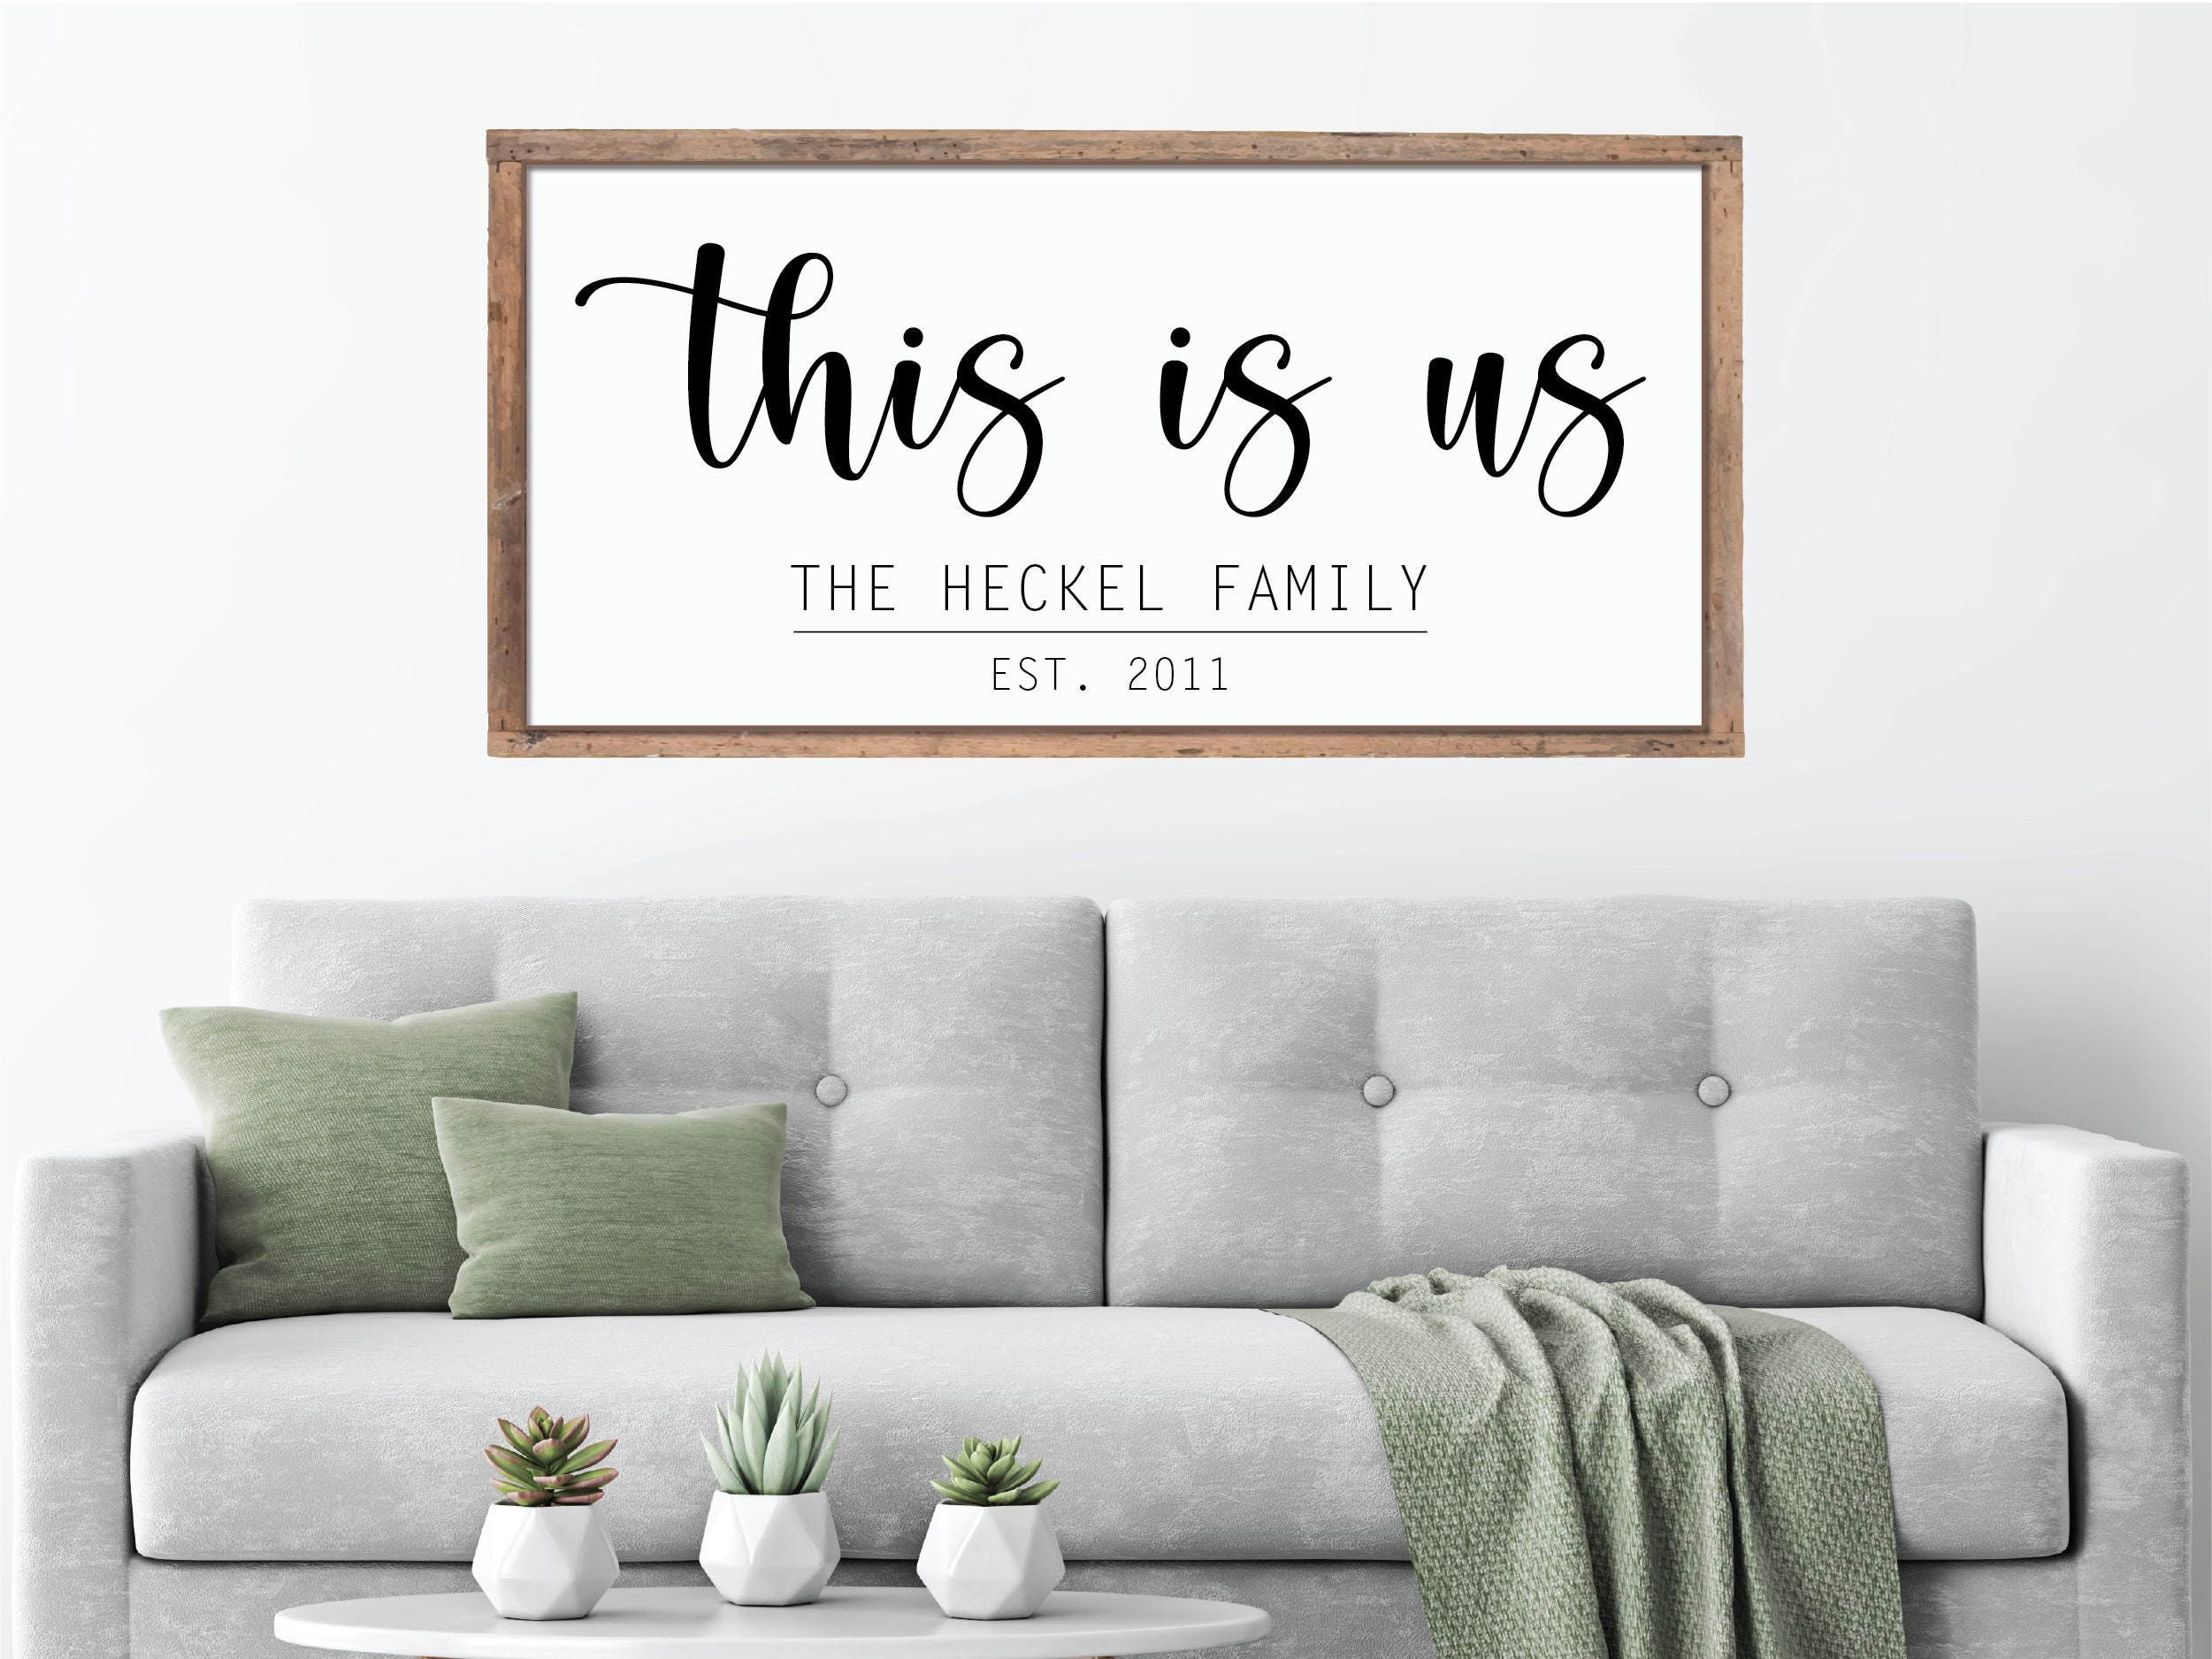 Personalized Family Name This Is Us Large Wood Farmhouse Sign Living Room Wall Decor Gifts For Mom